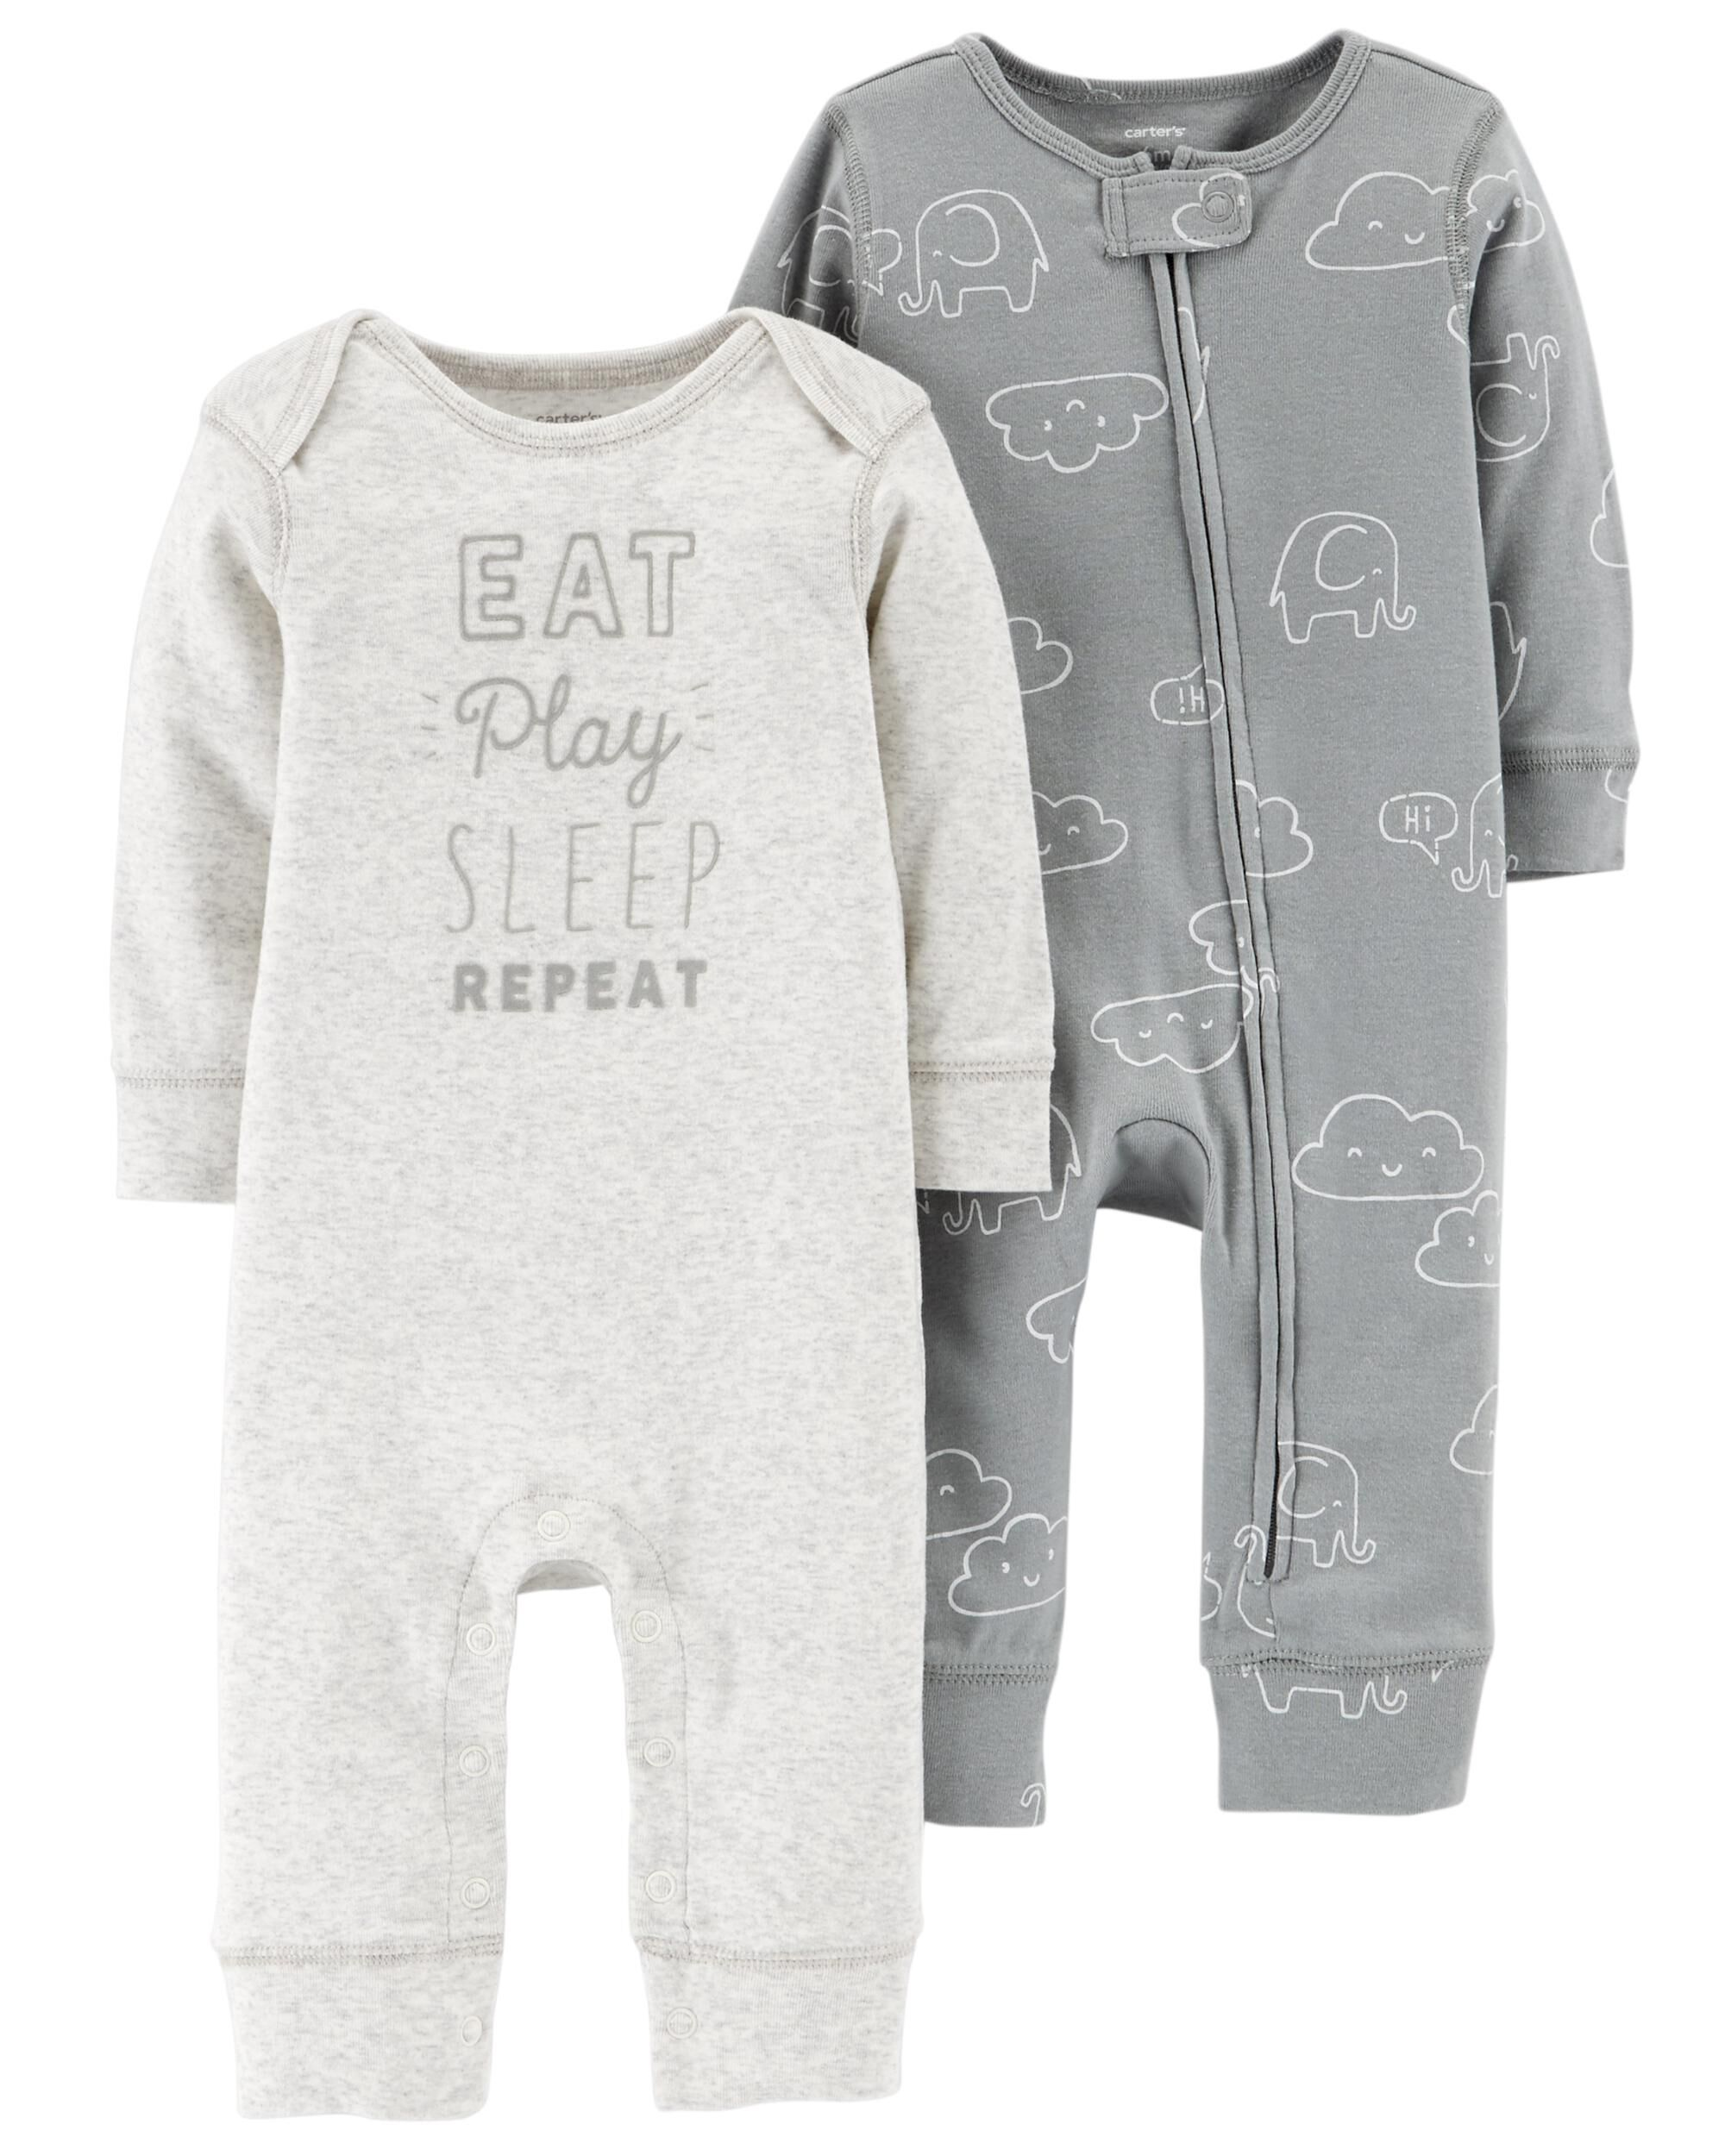 41861094aaac Baby Neutral 2-Pack Jumpsuits